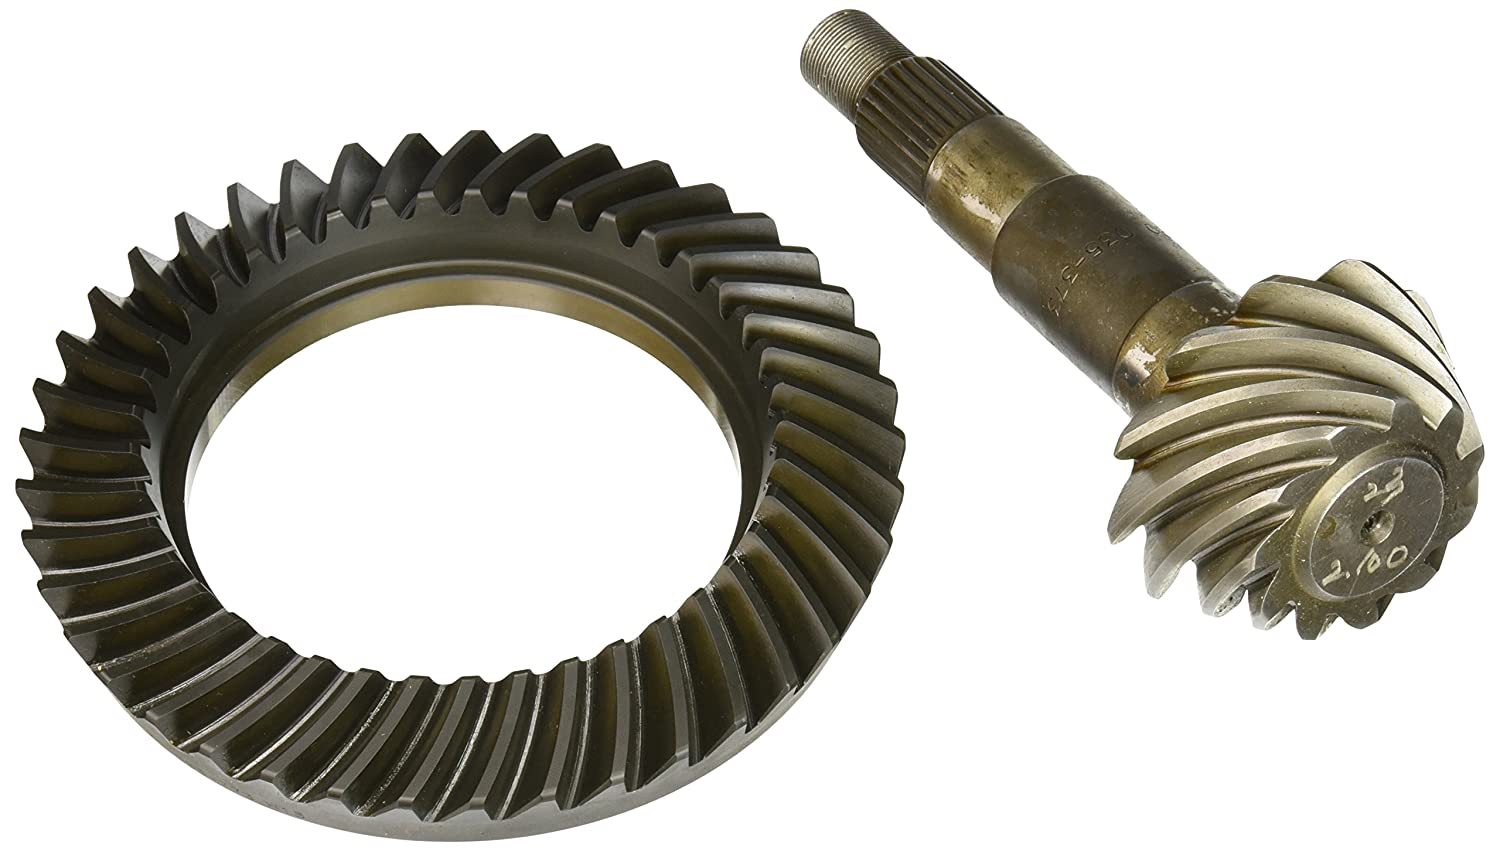 Motive Gear (D35-456) Performance Ring and Pinion Differential Set, Dana 35  Standard, 41-9 Teeth, 4 56 Ratio